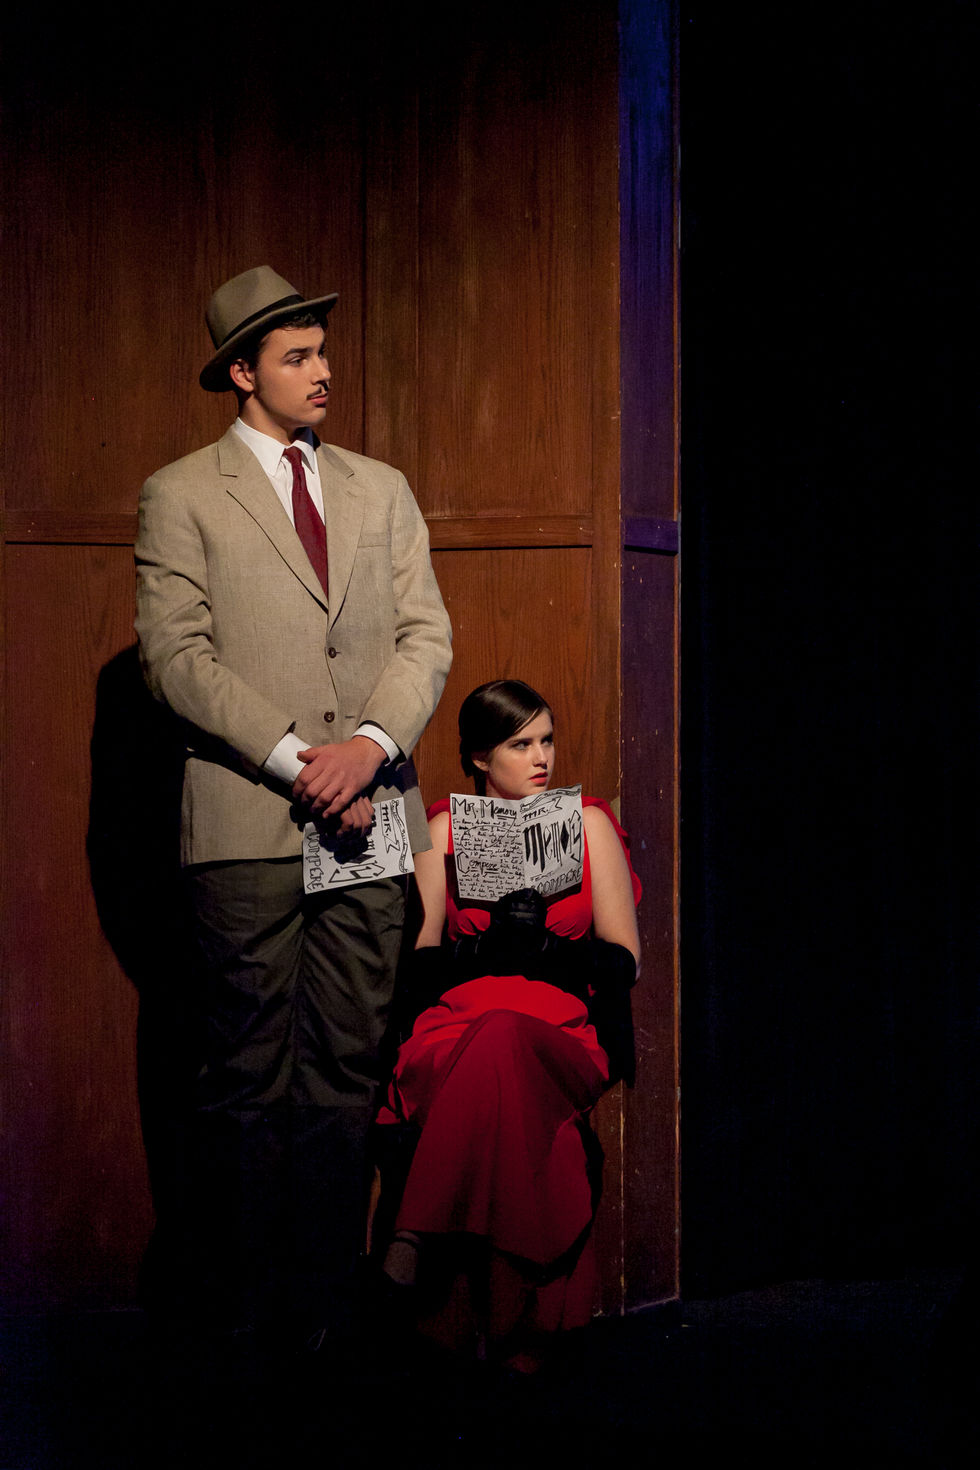 The 39 Steps 00022